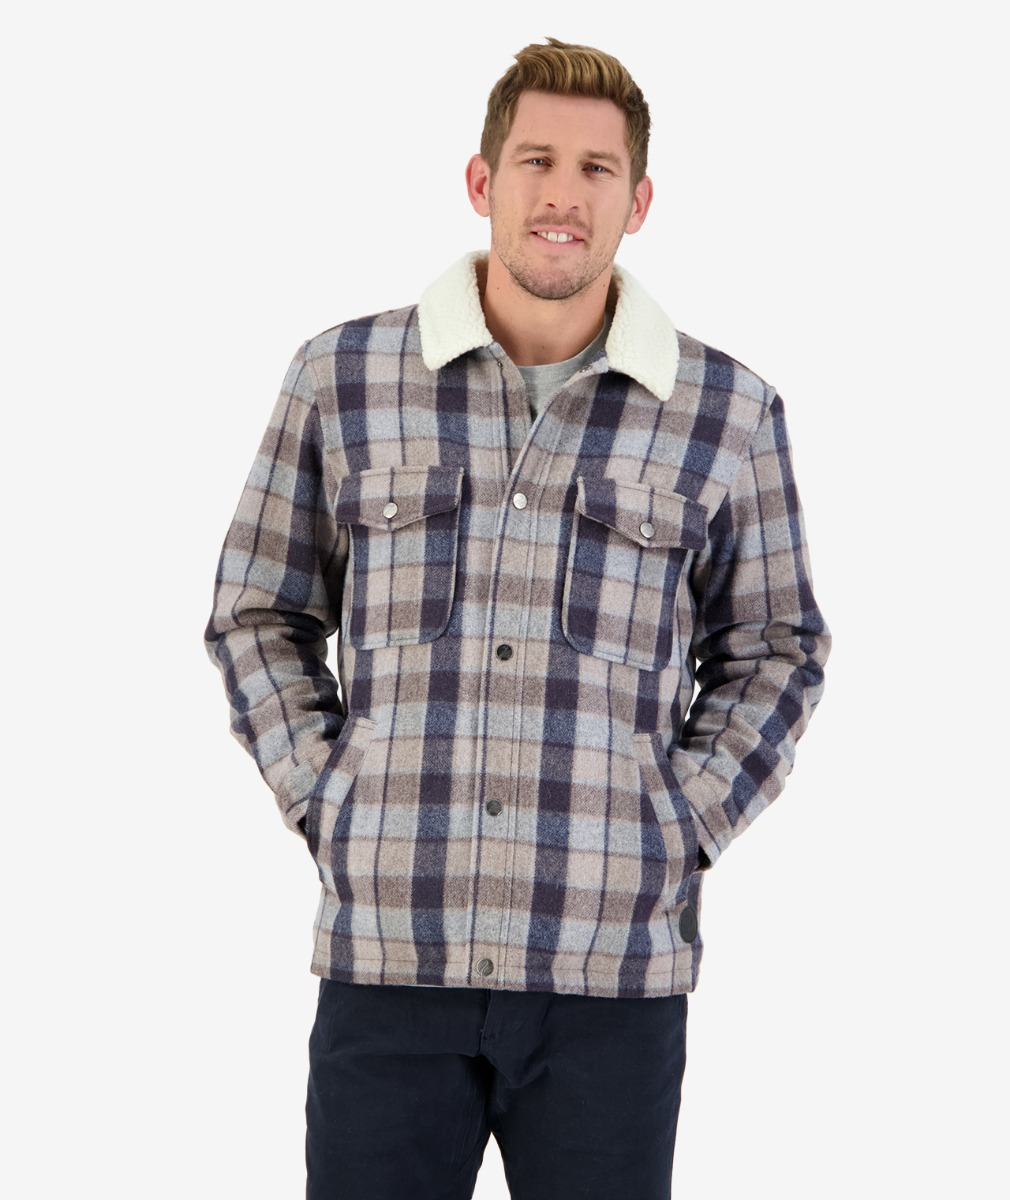 Swanndri Men's Kaituna Sherpa Lined Jacket in Country Check